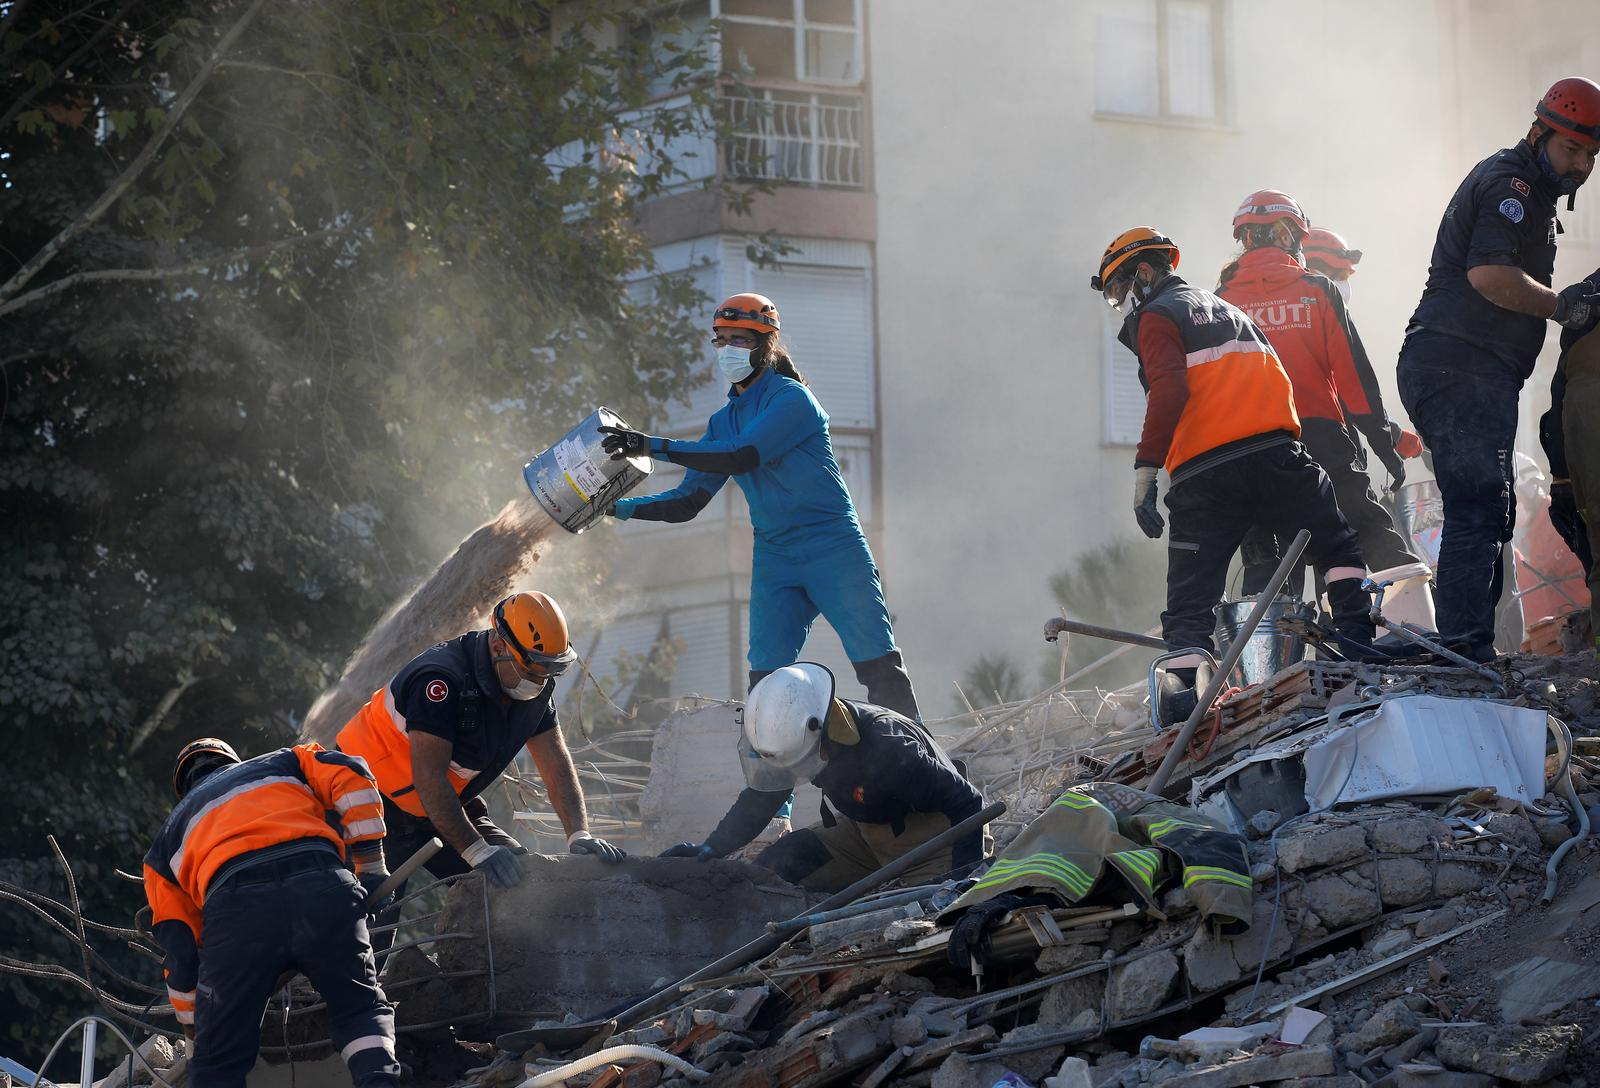 Rescue operations take place on a site after an earthquake struck the Aegean Sea, in the coastal province of Izmir, Turkey, November 2, 2020. Photo: Reuters